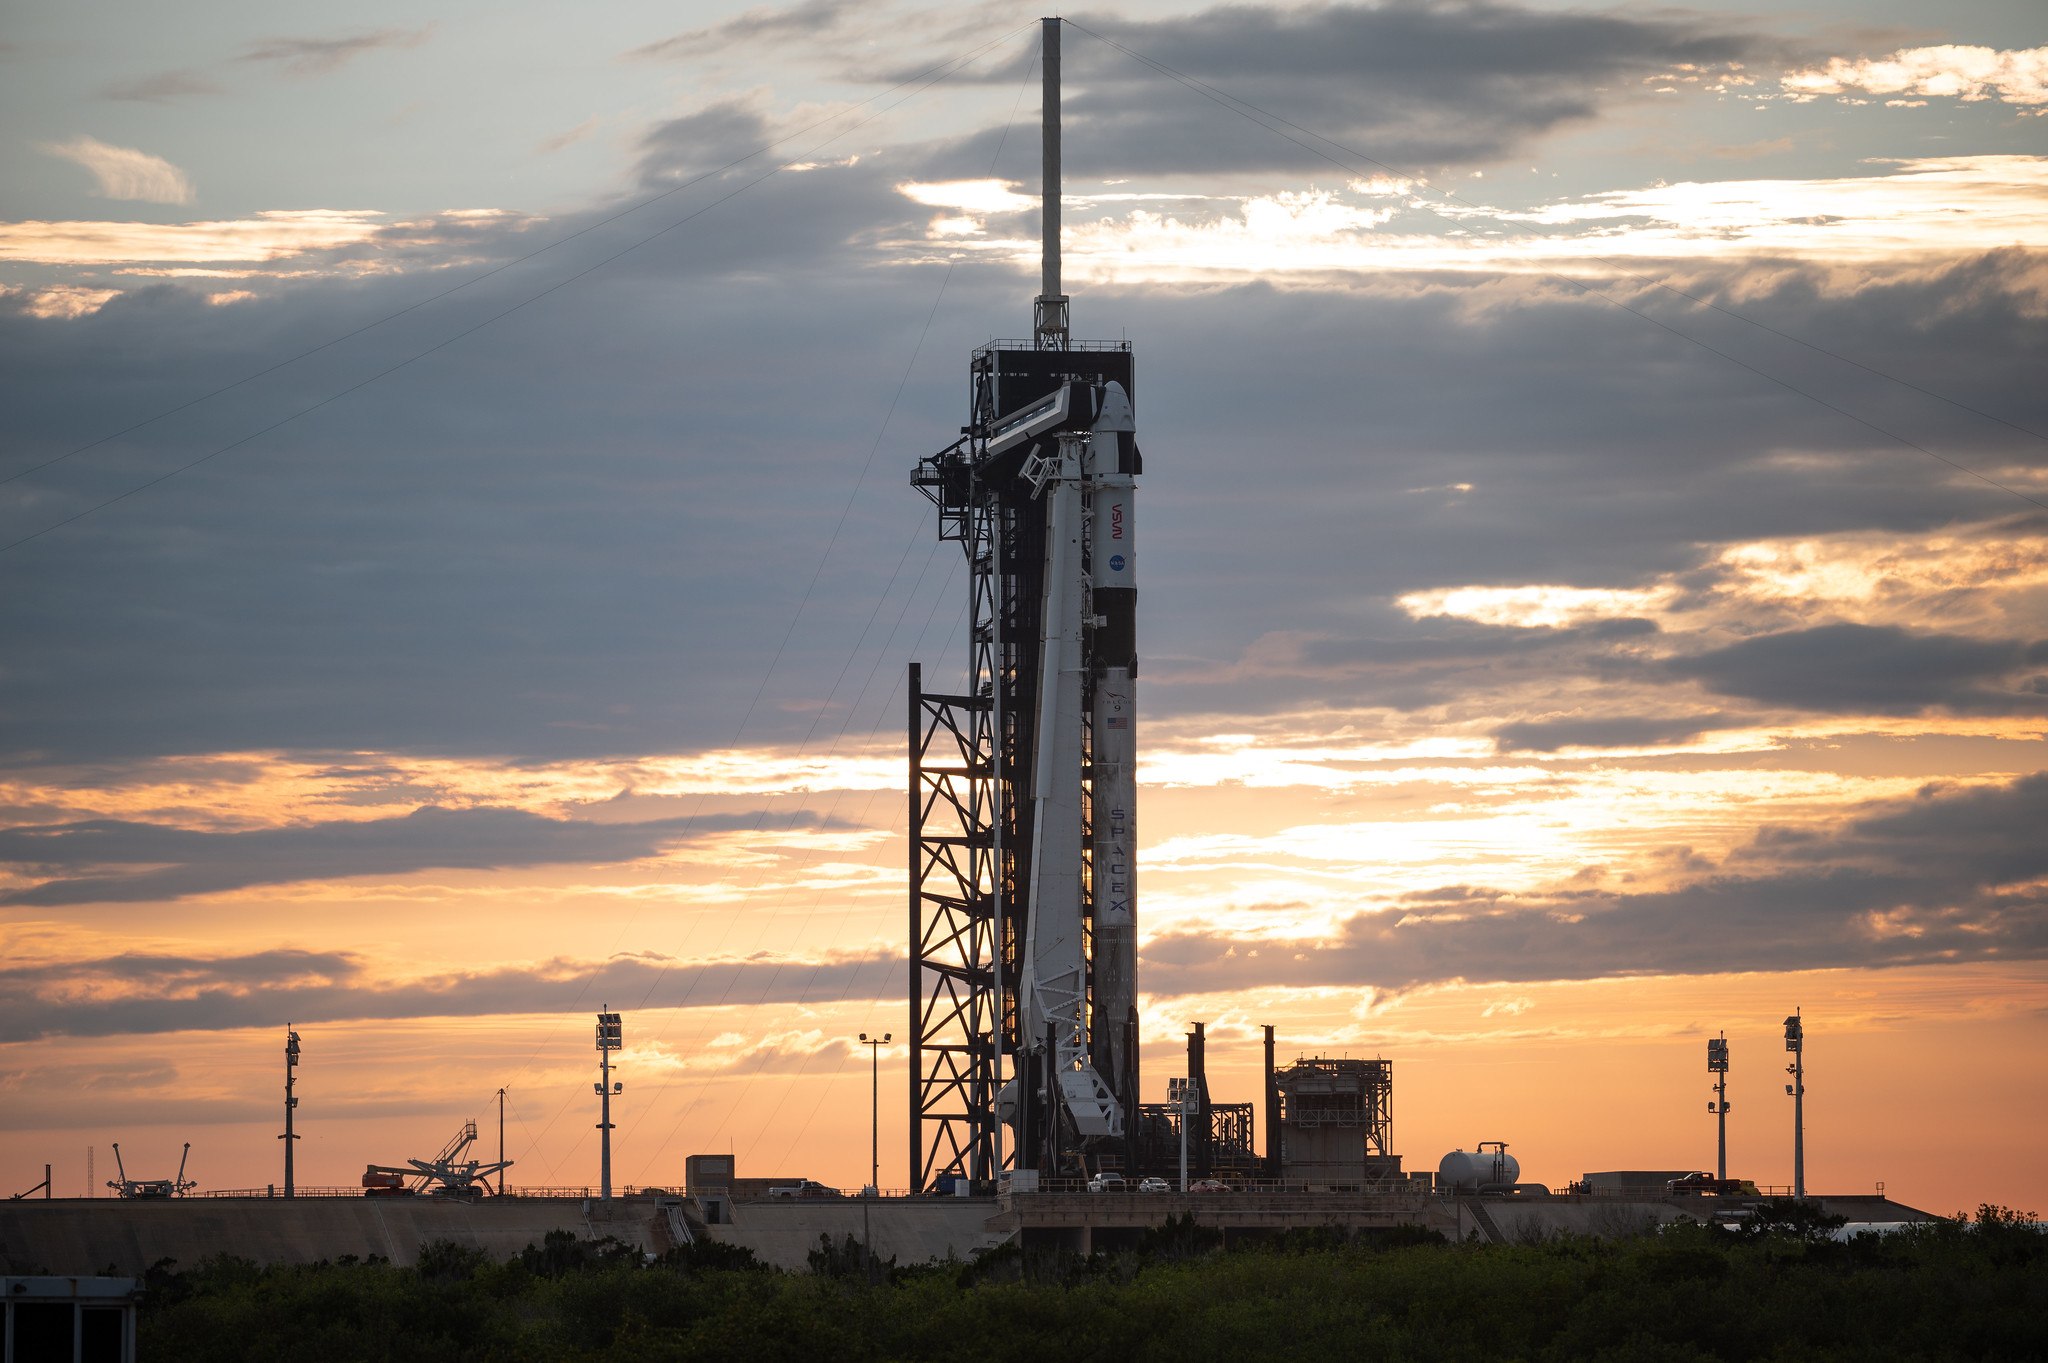 A SpaceX Falcon 9 rocket and Crew Dragon spacecraft are seen at sunset on the launch pad at Launch Complex 39A as preparations continue for the Crew-2 mission, on April 19, 2021, at NASA's Kennedy Space Center in Florida.